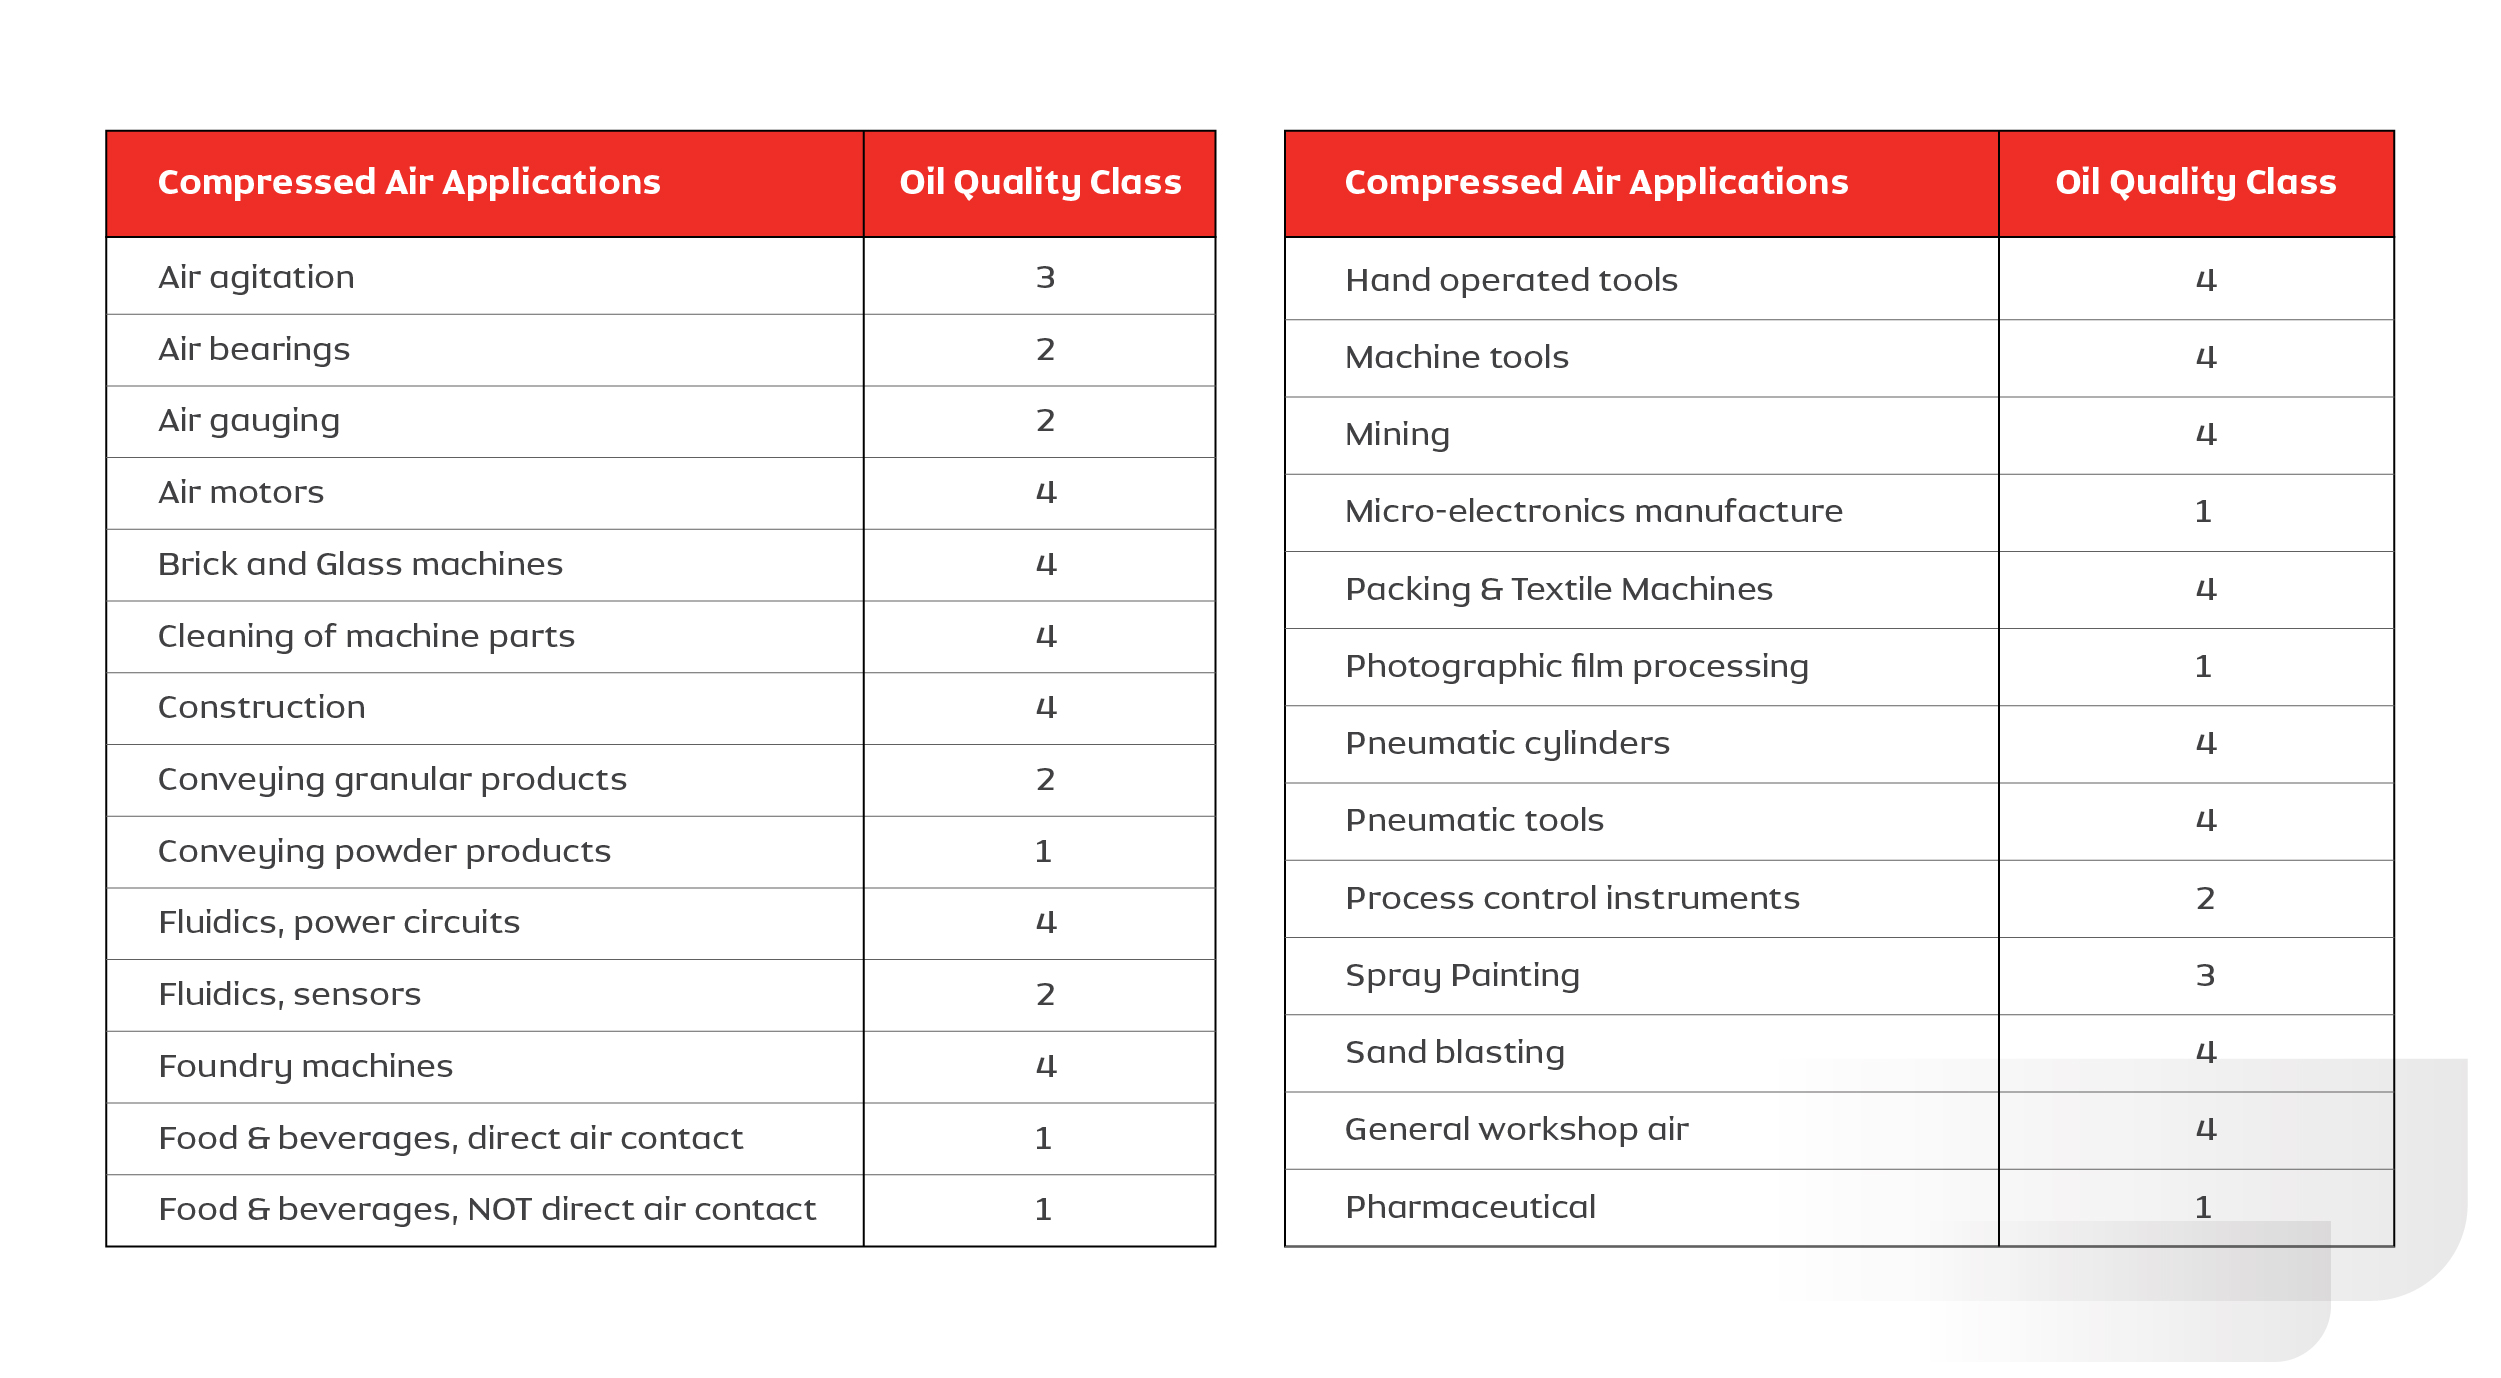 Table: 1.2. Details of application requirements vs Quality class of oil